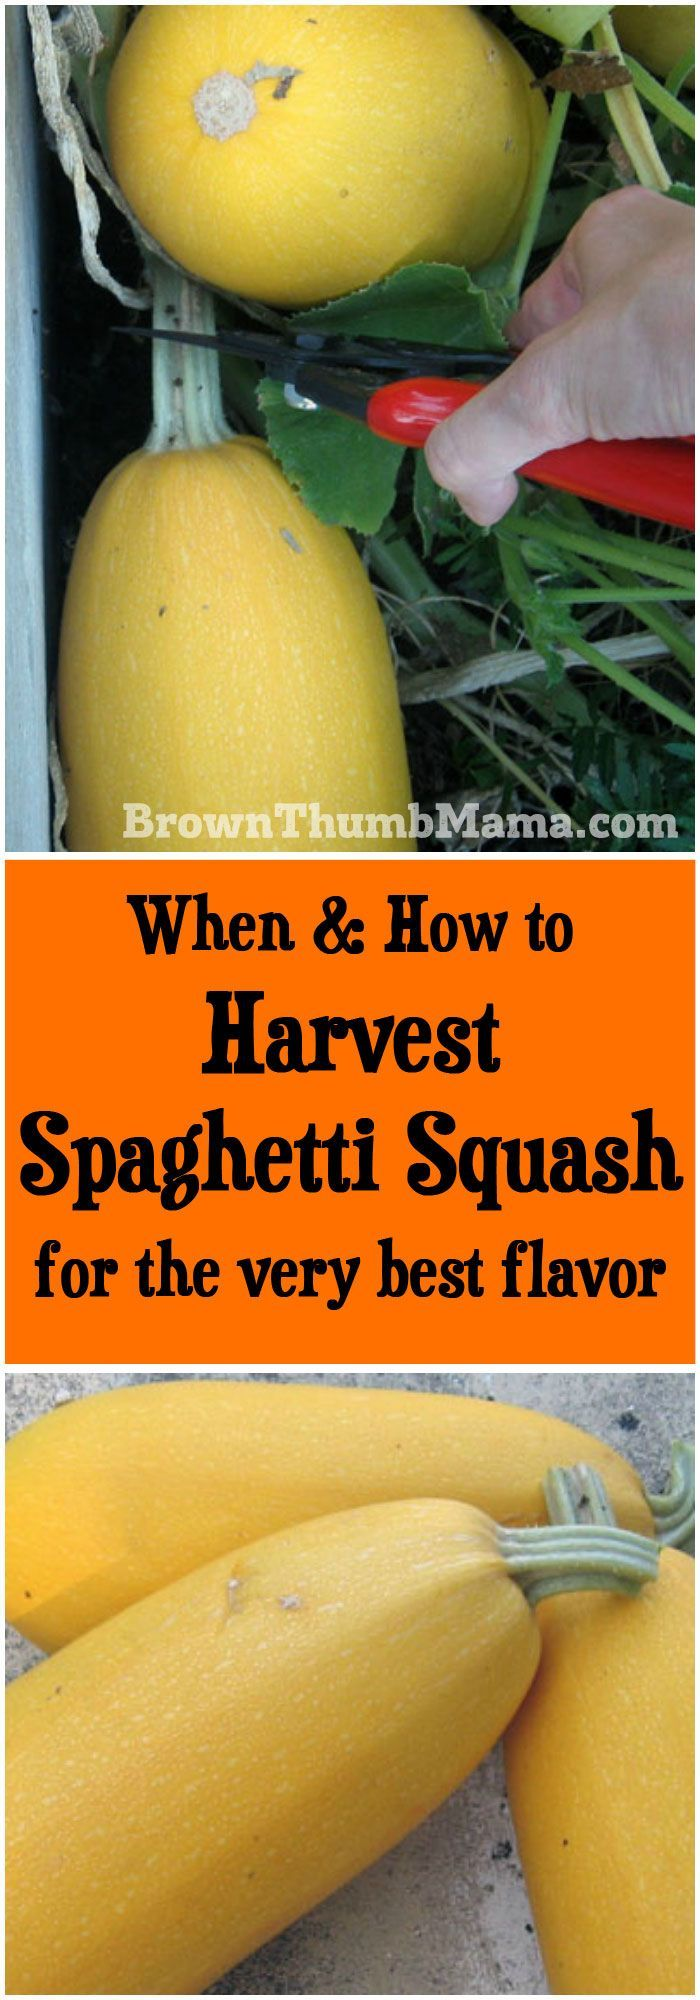 When and how to harvest spaghetti squash for the very best flavor: http://BrownThumbMama.com